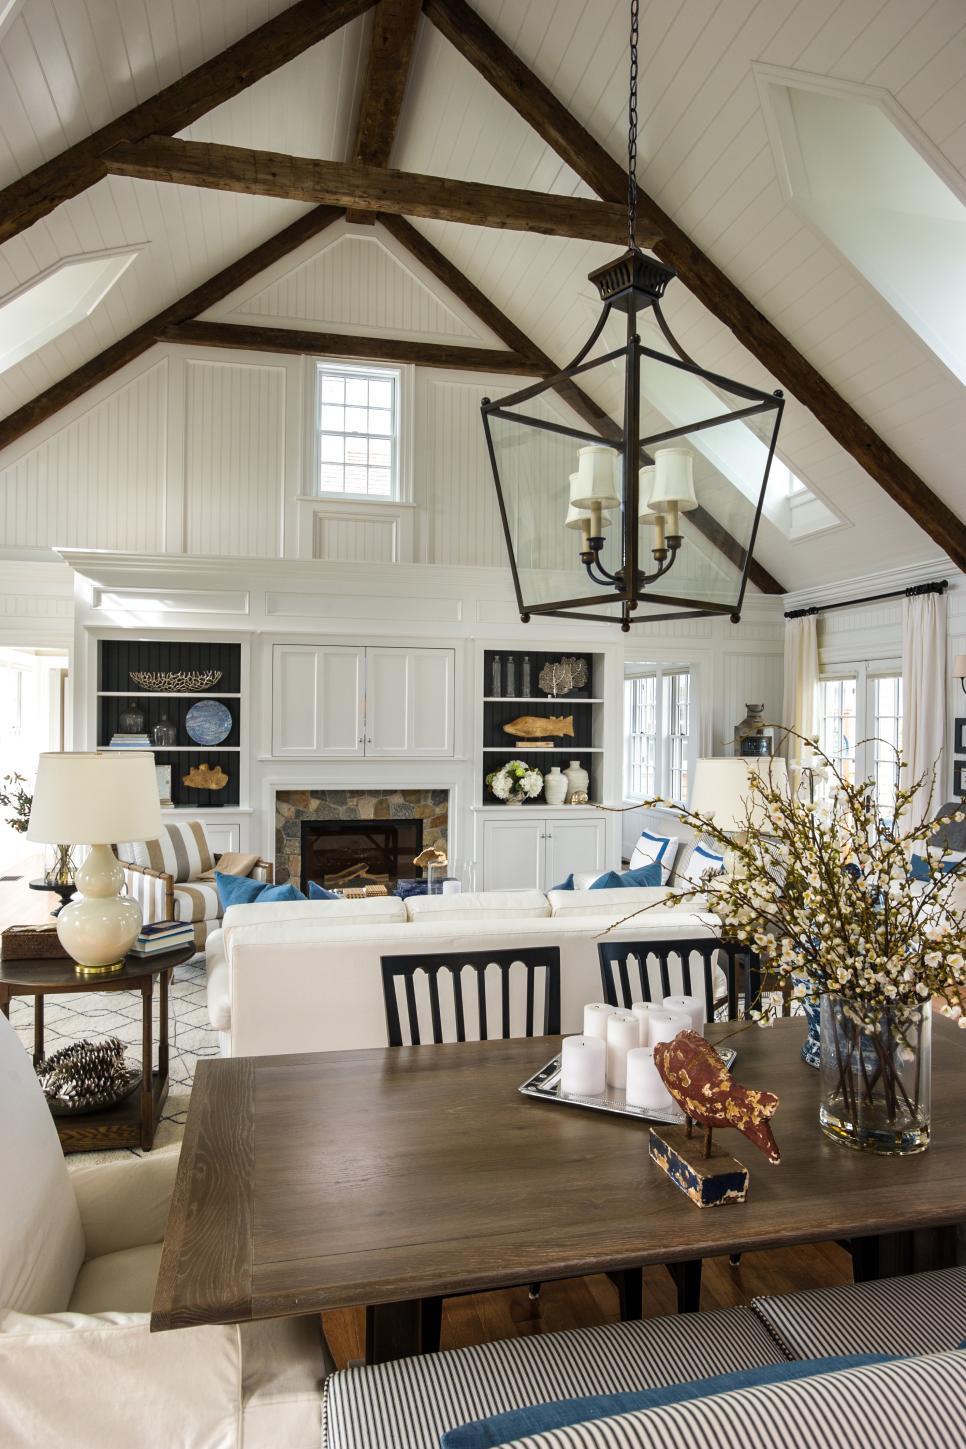 Hgtv dream home 2015 dining room hgtv dream home 2015 Dream room design